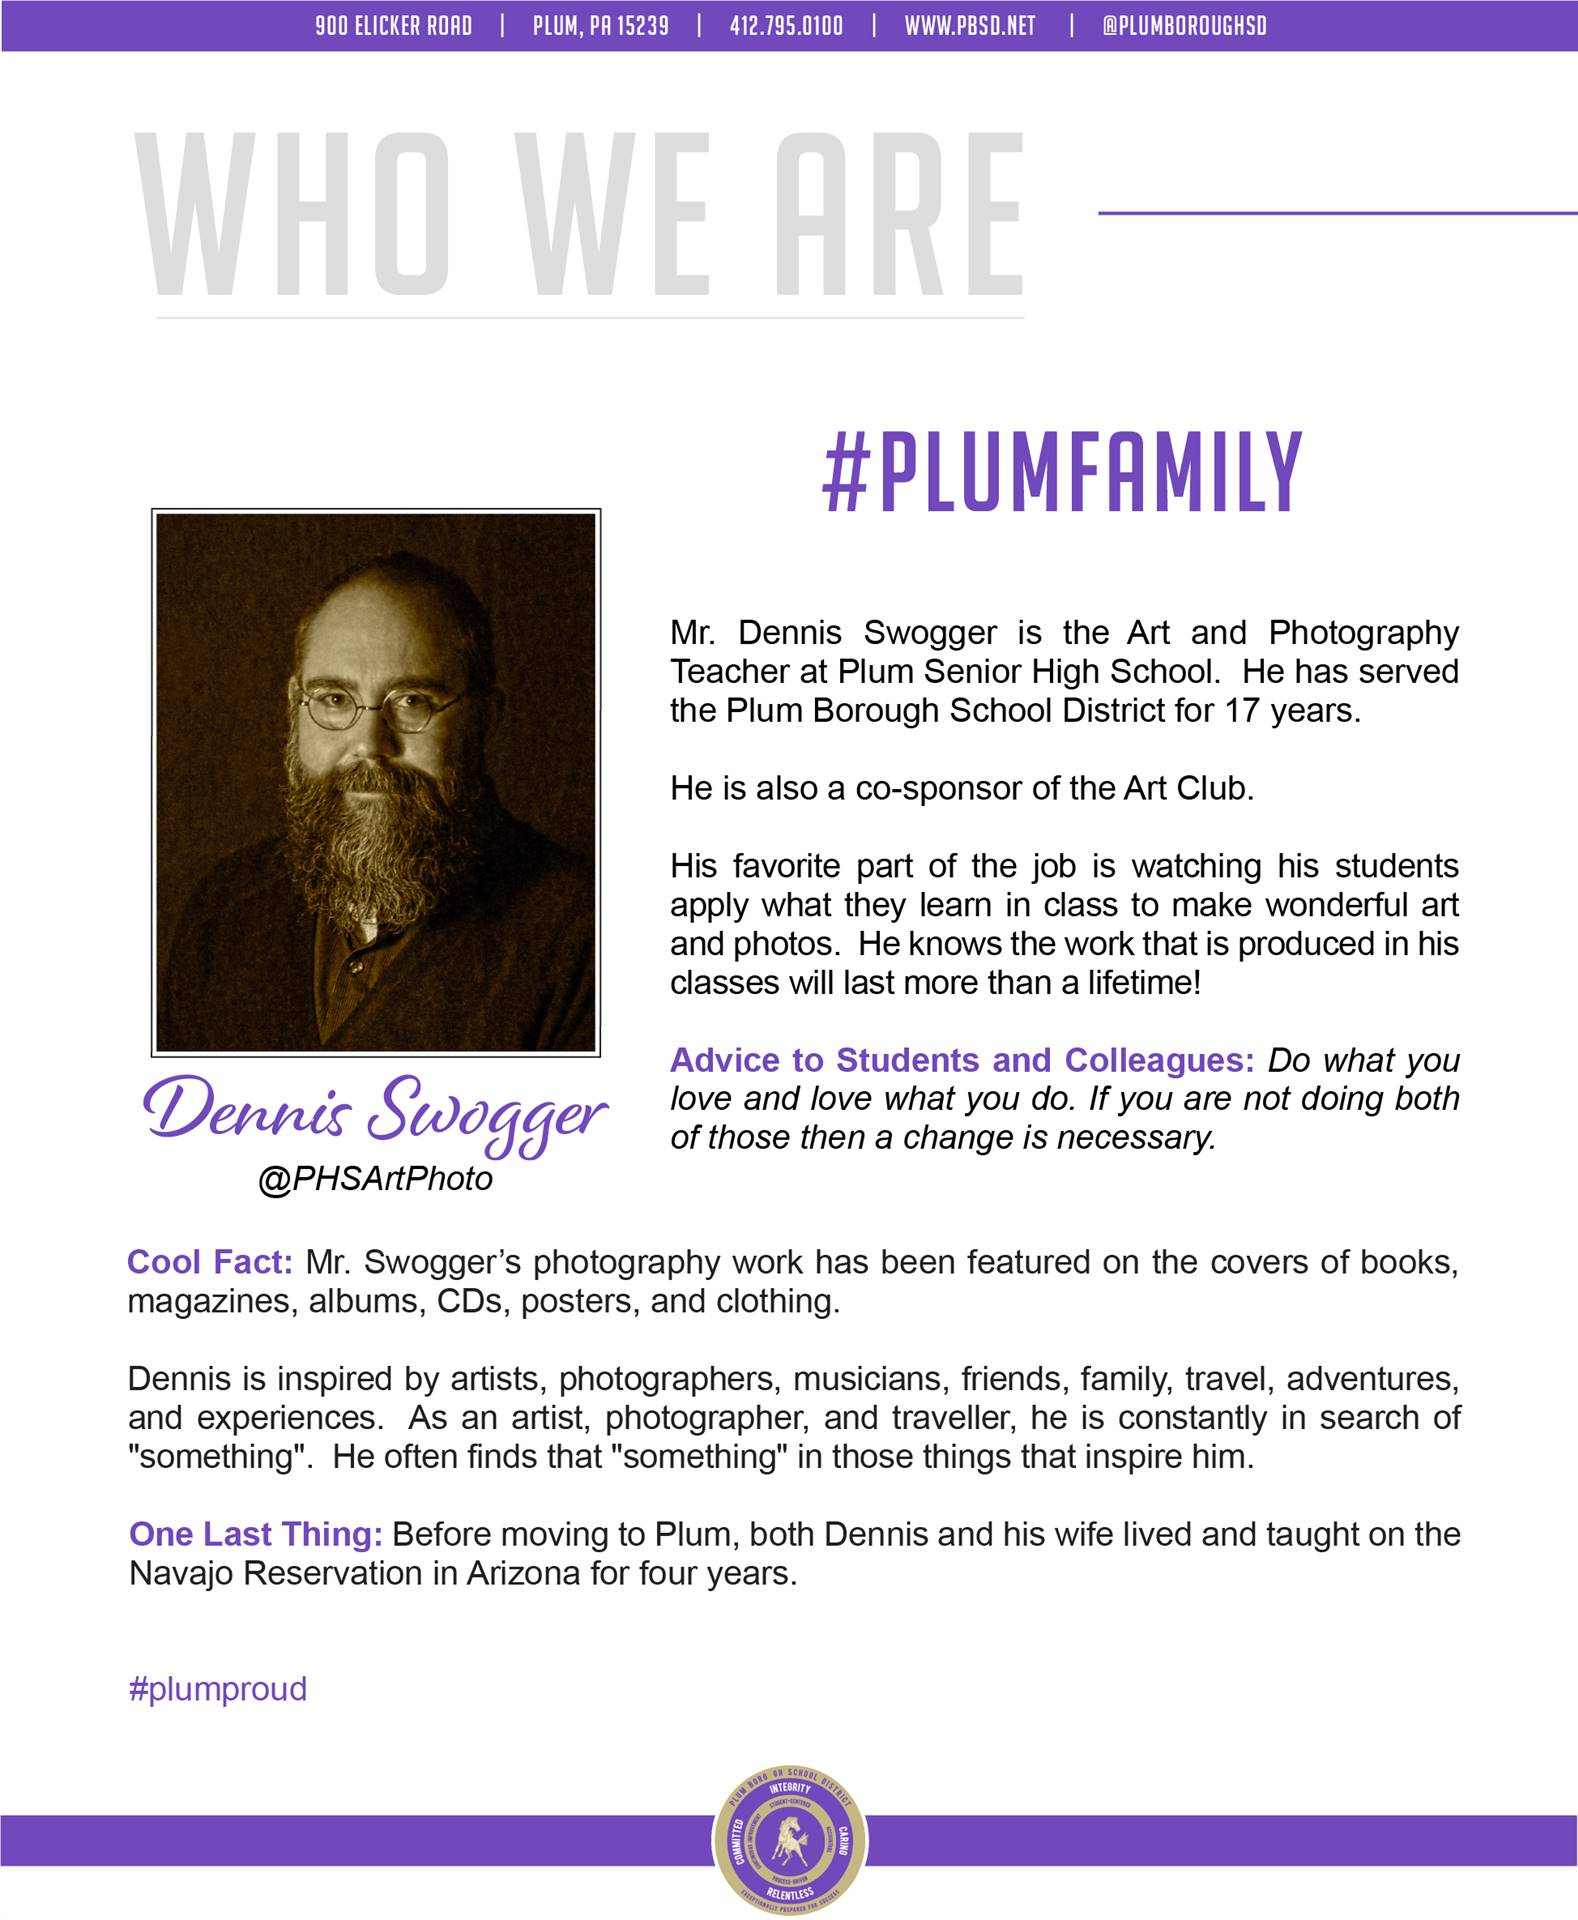 Who We Are Wednesday features Dennis Swogger.